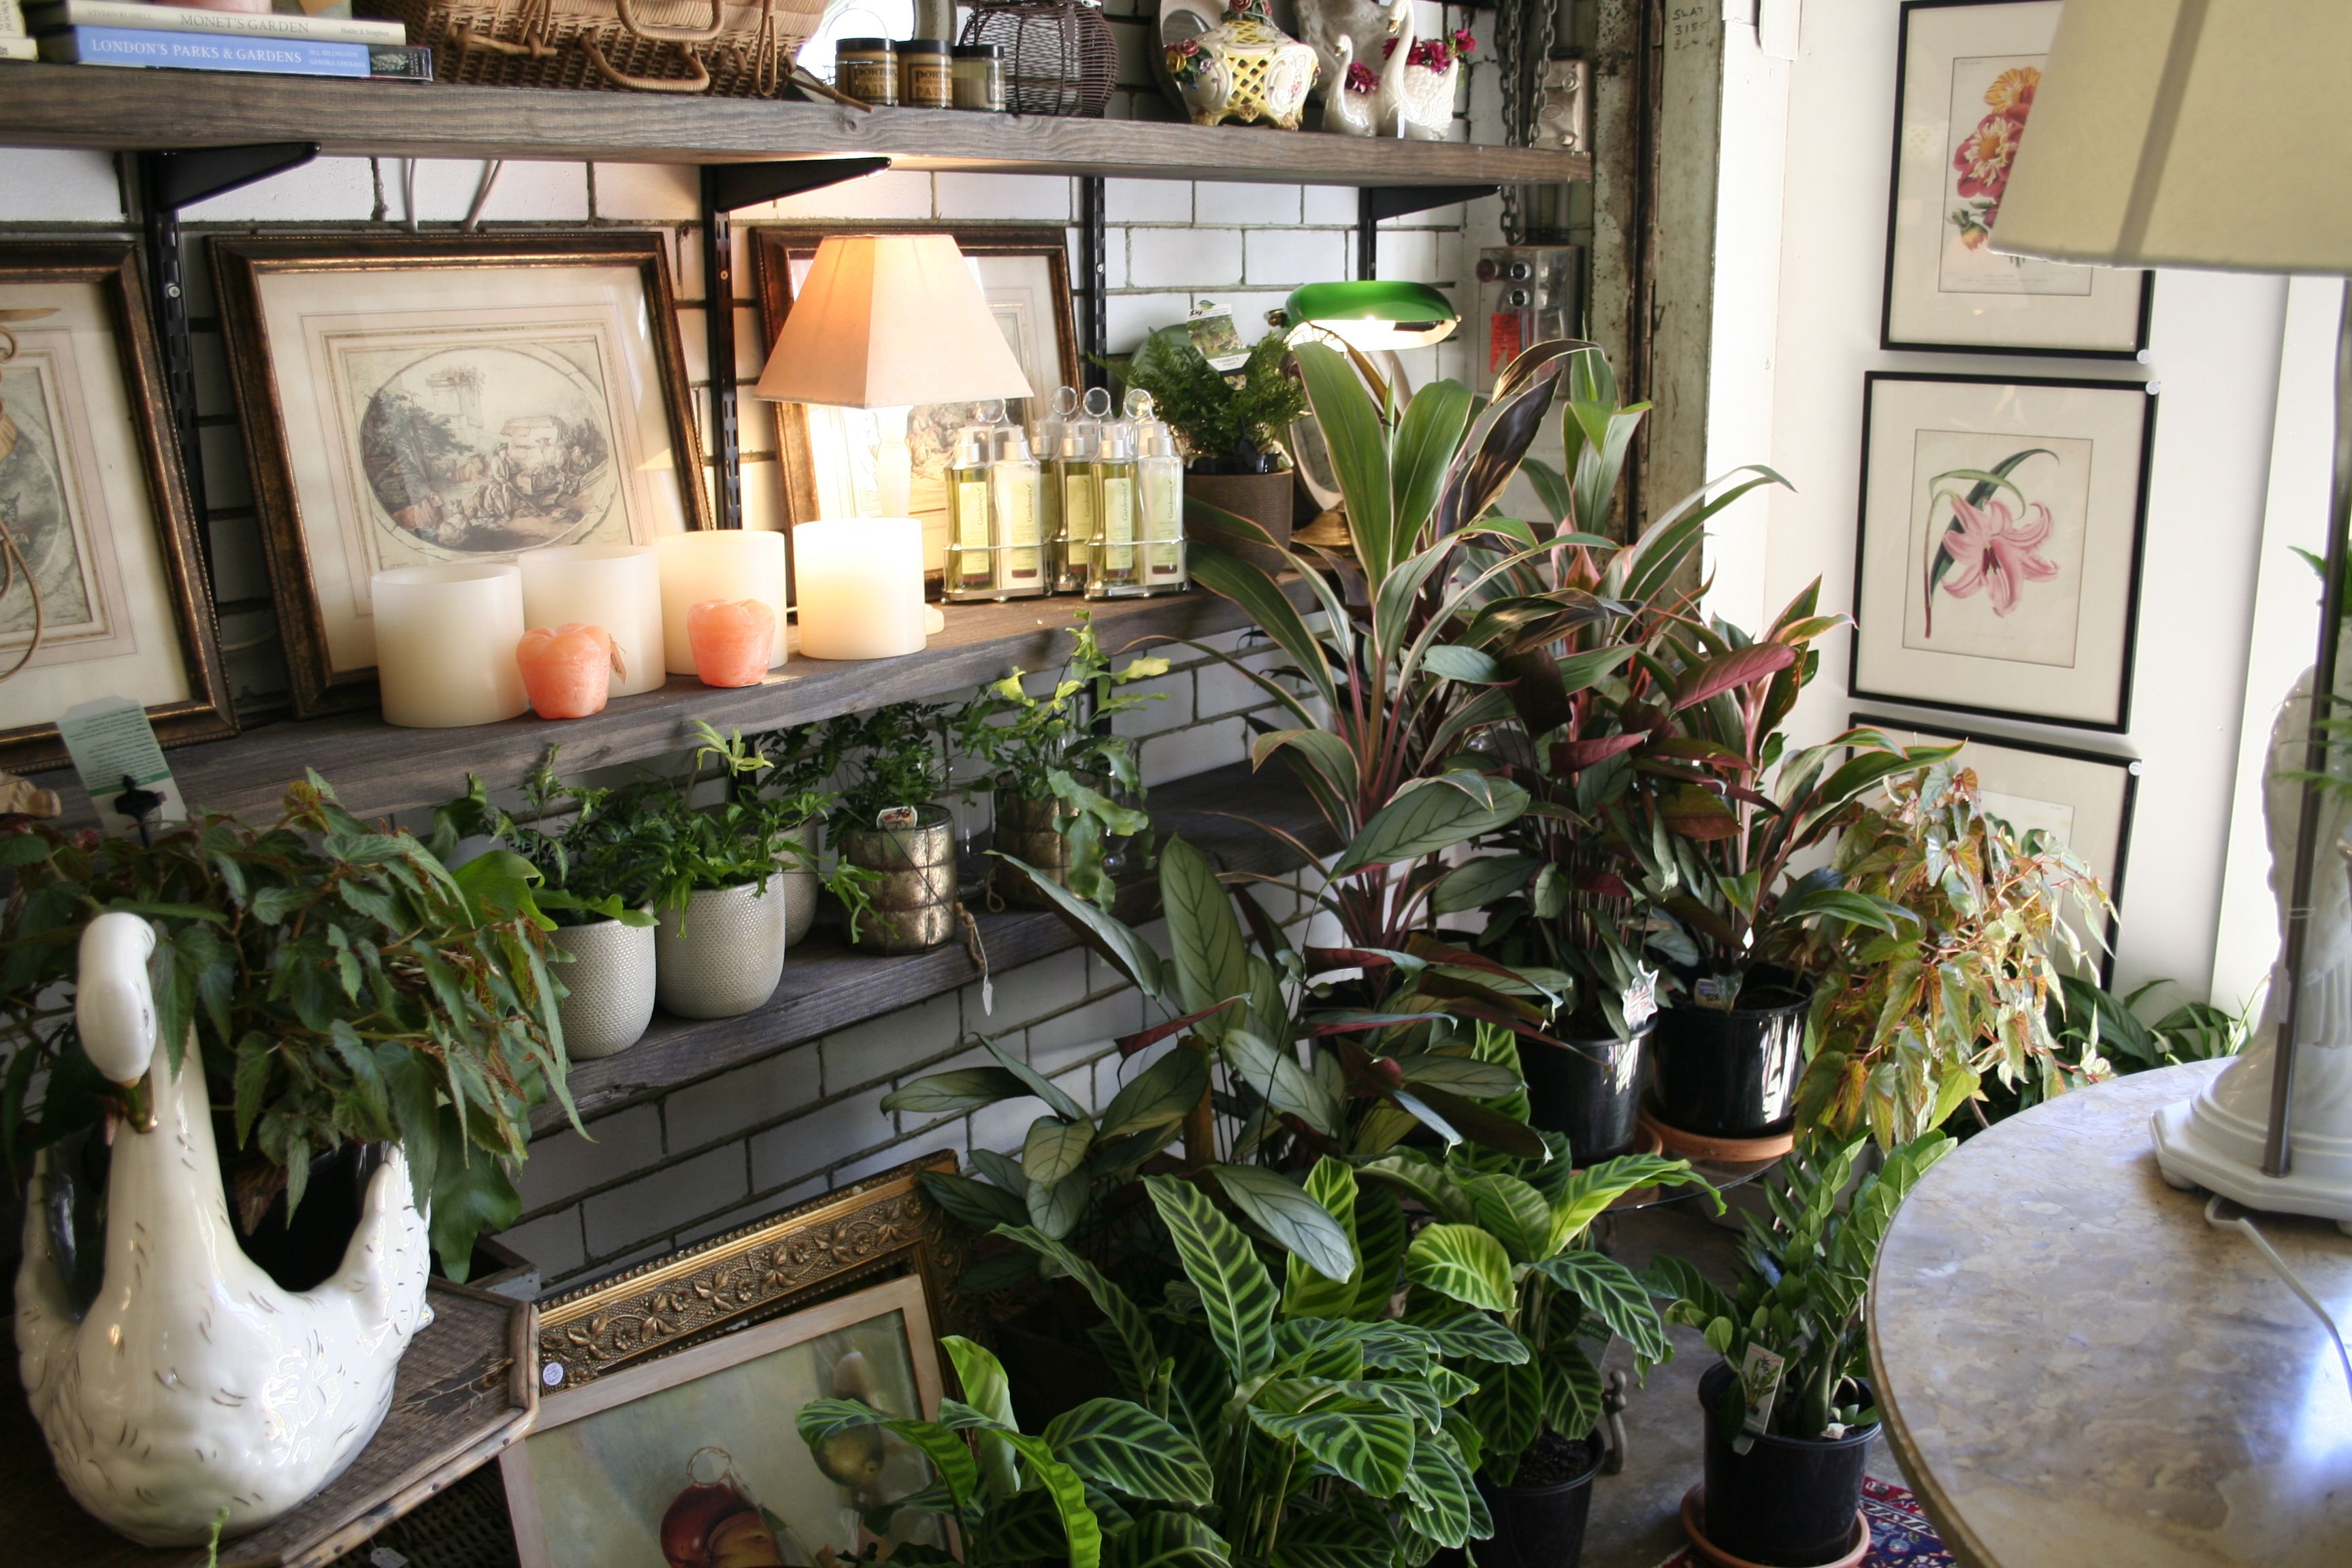 The Potting Shed | Heirloom perennials, advanced buxus, edibles